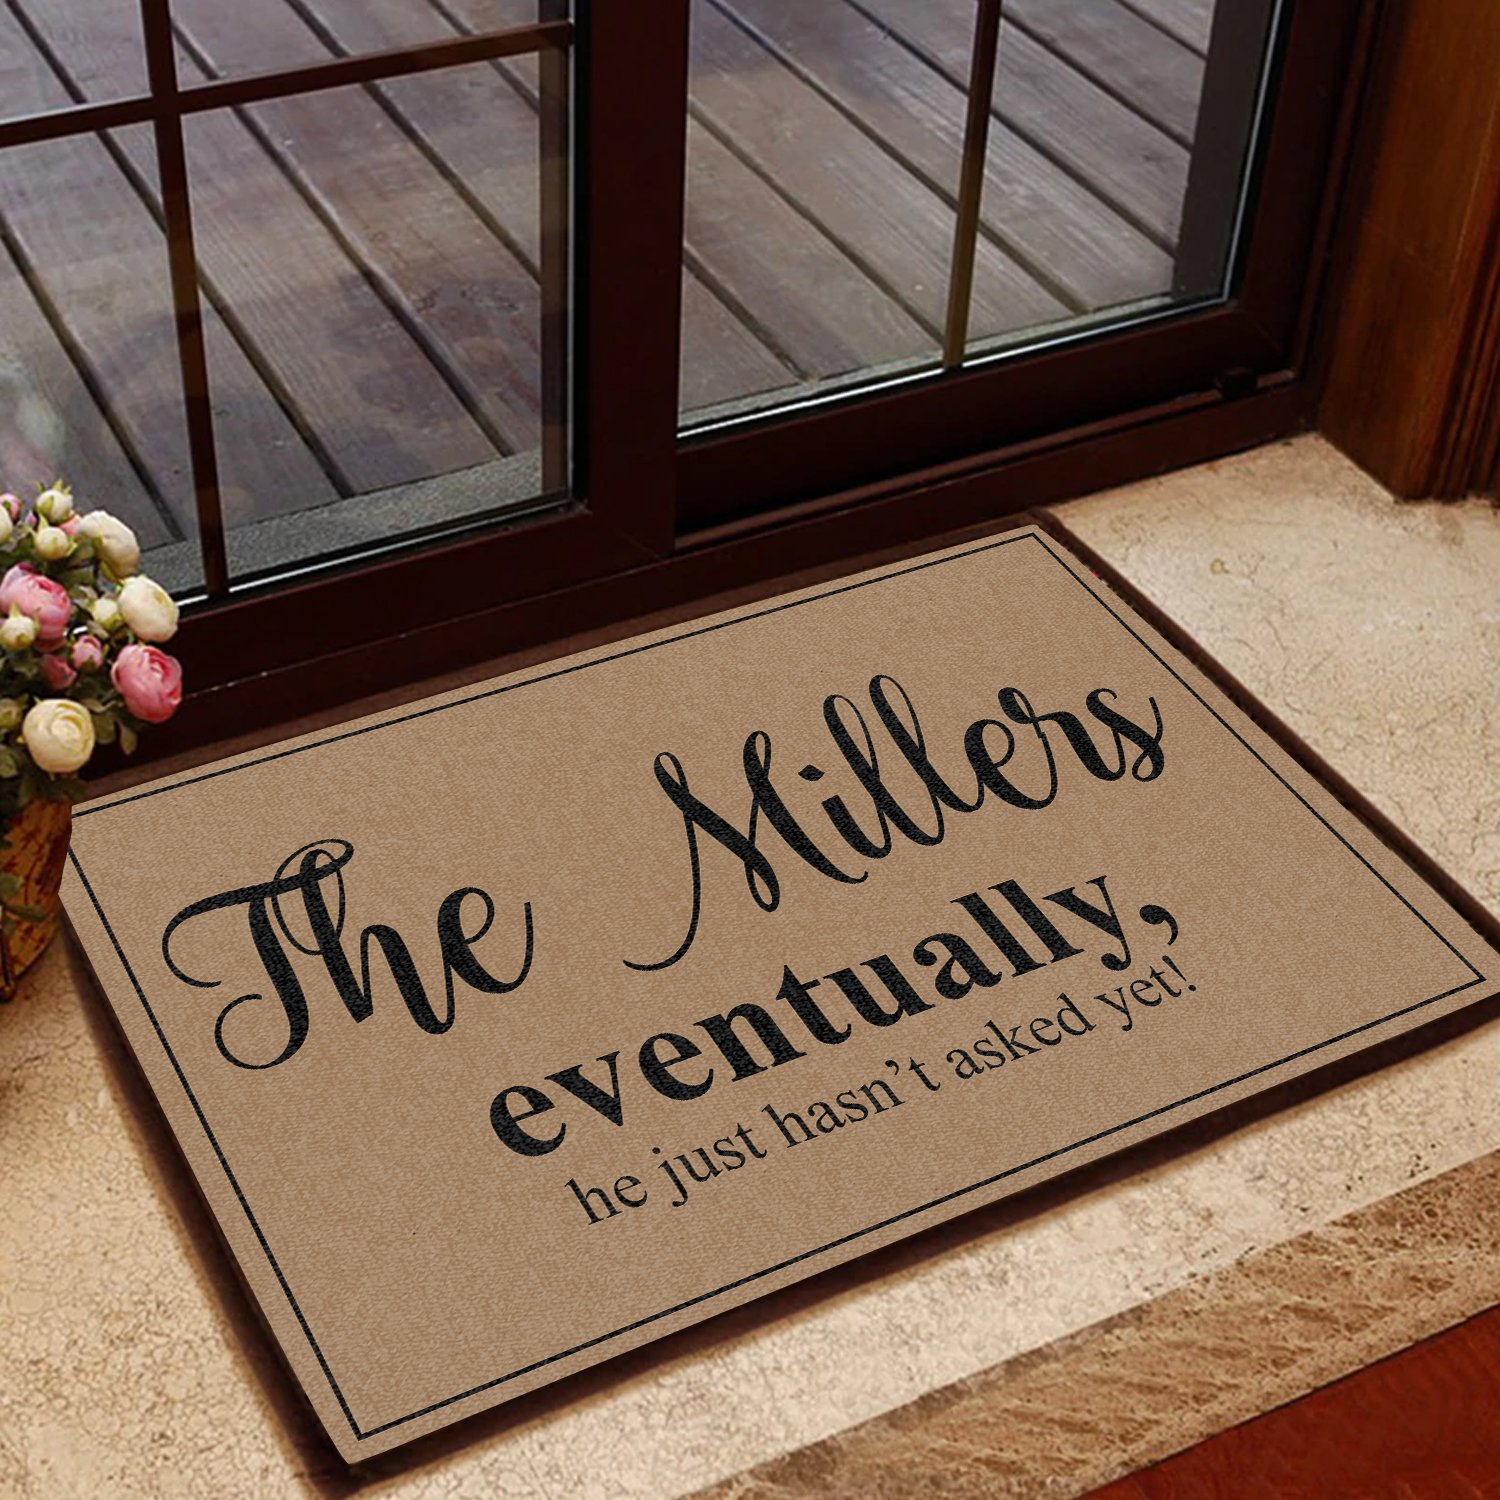 the millers eventually he just hasnt asked yet doormat 3